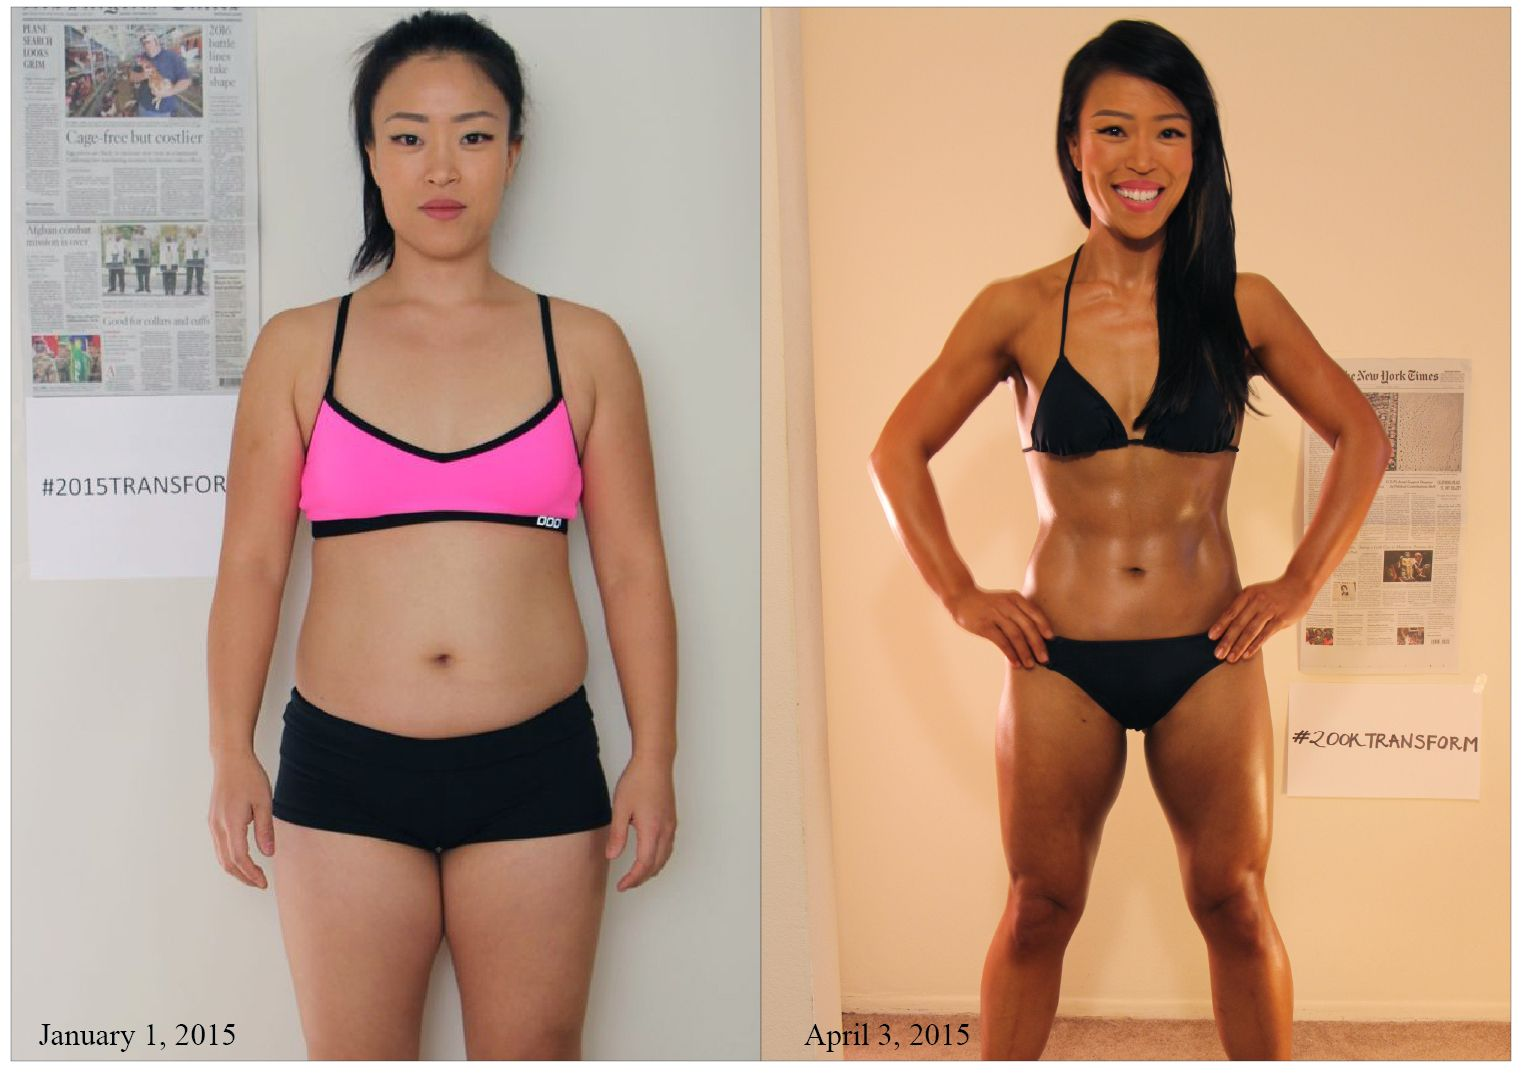 Meat Eater to Vegan: How my Client Beat 435000 Others & Won BodyBuilding.com's Transformation